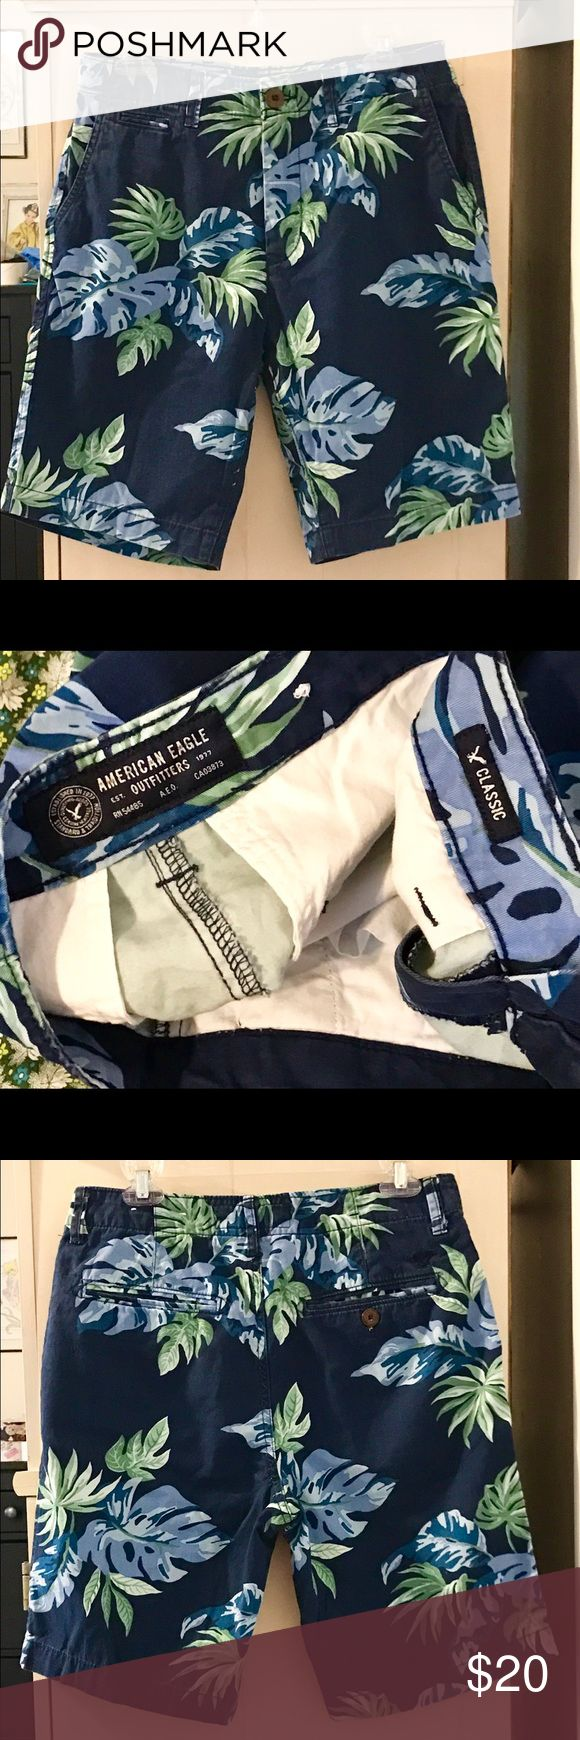 """AMERICAN EAGLE NAVY FORAL CLASSIC FIT KHAKI SHORTS Very cool, American Eagle Navy Floral Classic Fit Khaki Logo Shorts! Men's Size 30. Flawless, worn Once, for a couple of hours. From late Summer '16. They are 100 % Super soft Cotton, nice Med.-weight, not light~ Very Cool HAWAIIAN 🌺 LOOK SHORTS AE FAB QUALITY! Like New! Navy, with green, white, light & med. blues.  2 Front Slash Pockets. Small Coin Pocket in Front. 2 Back Welt Pockets, Right side buttons.  TTS! Waist: 30"""" Inseam 9.5"""" Sexy…"""